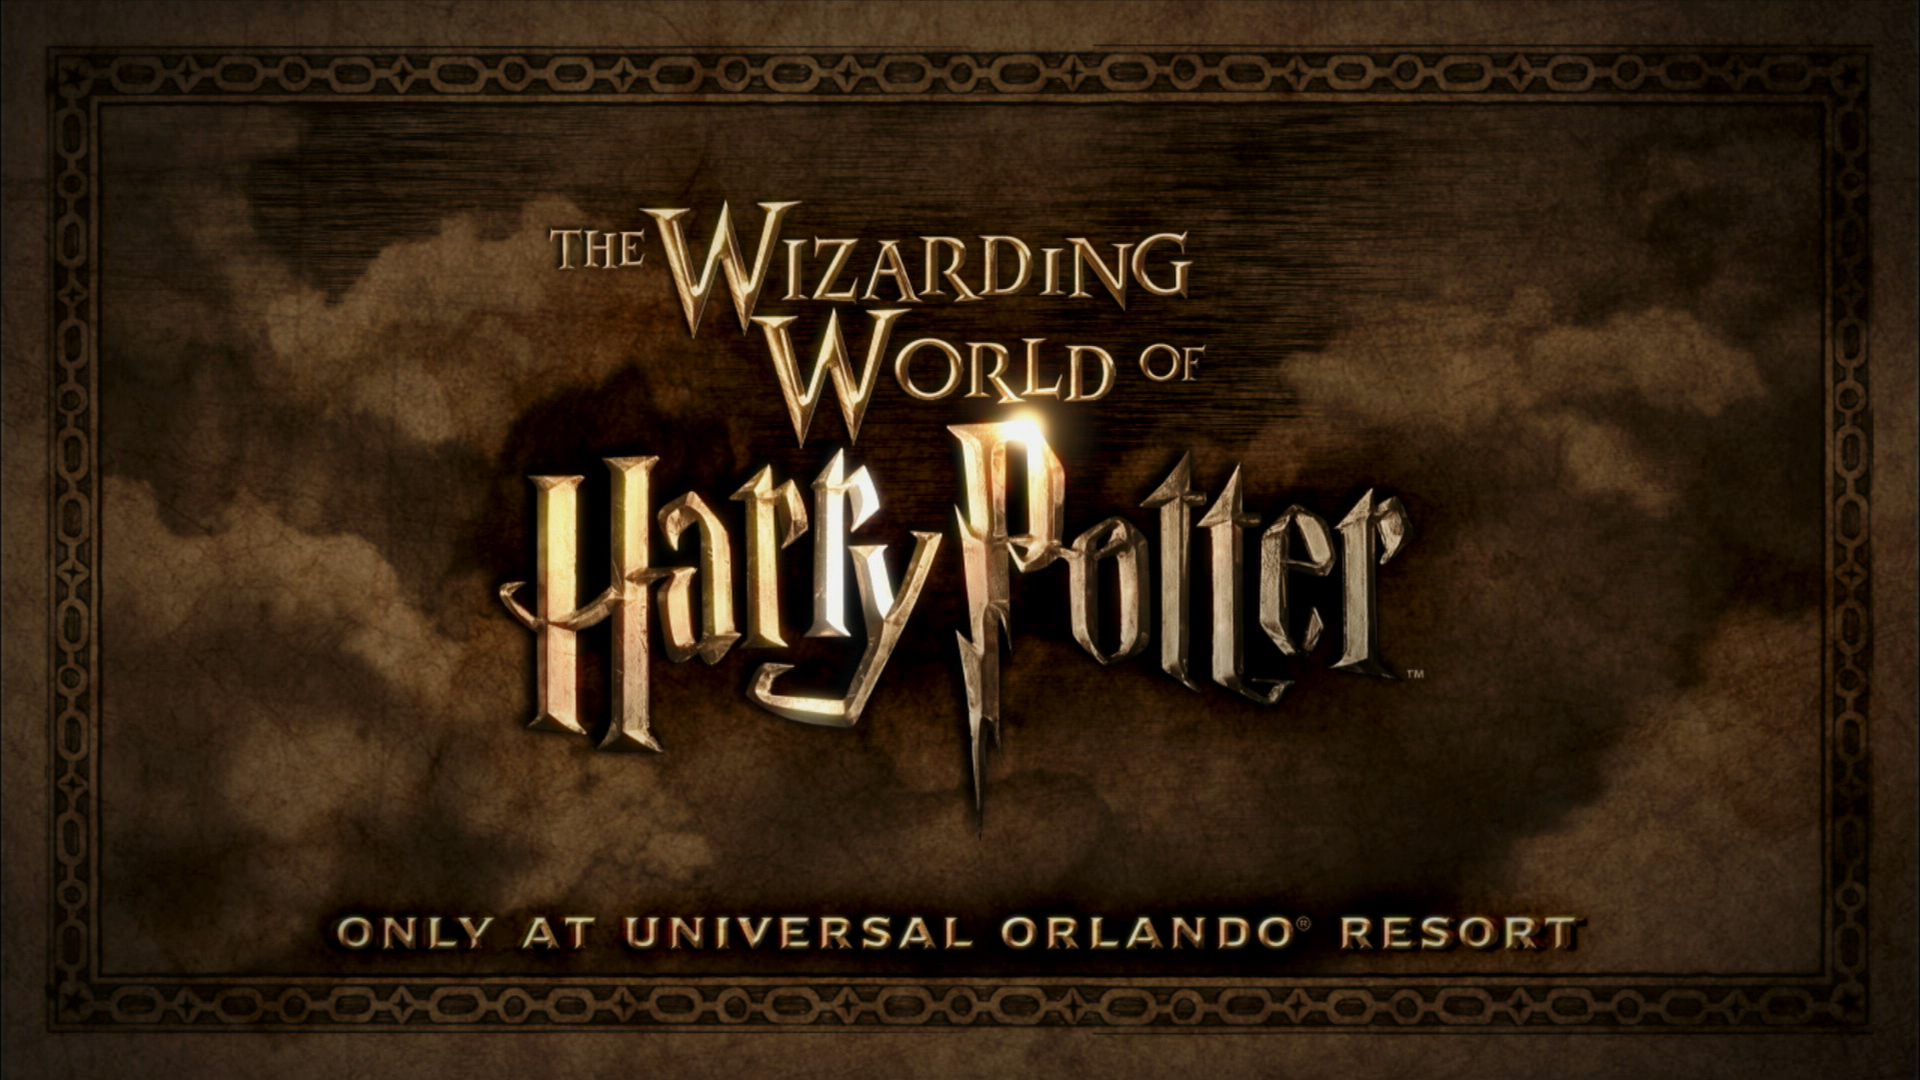 http://www.g87creative.com/portfolio/the-making-of-the-wizarding-world-of-harry-potter/